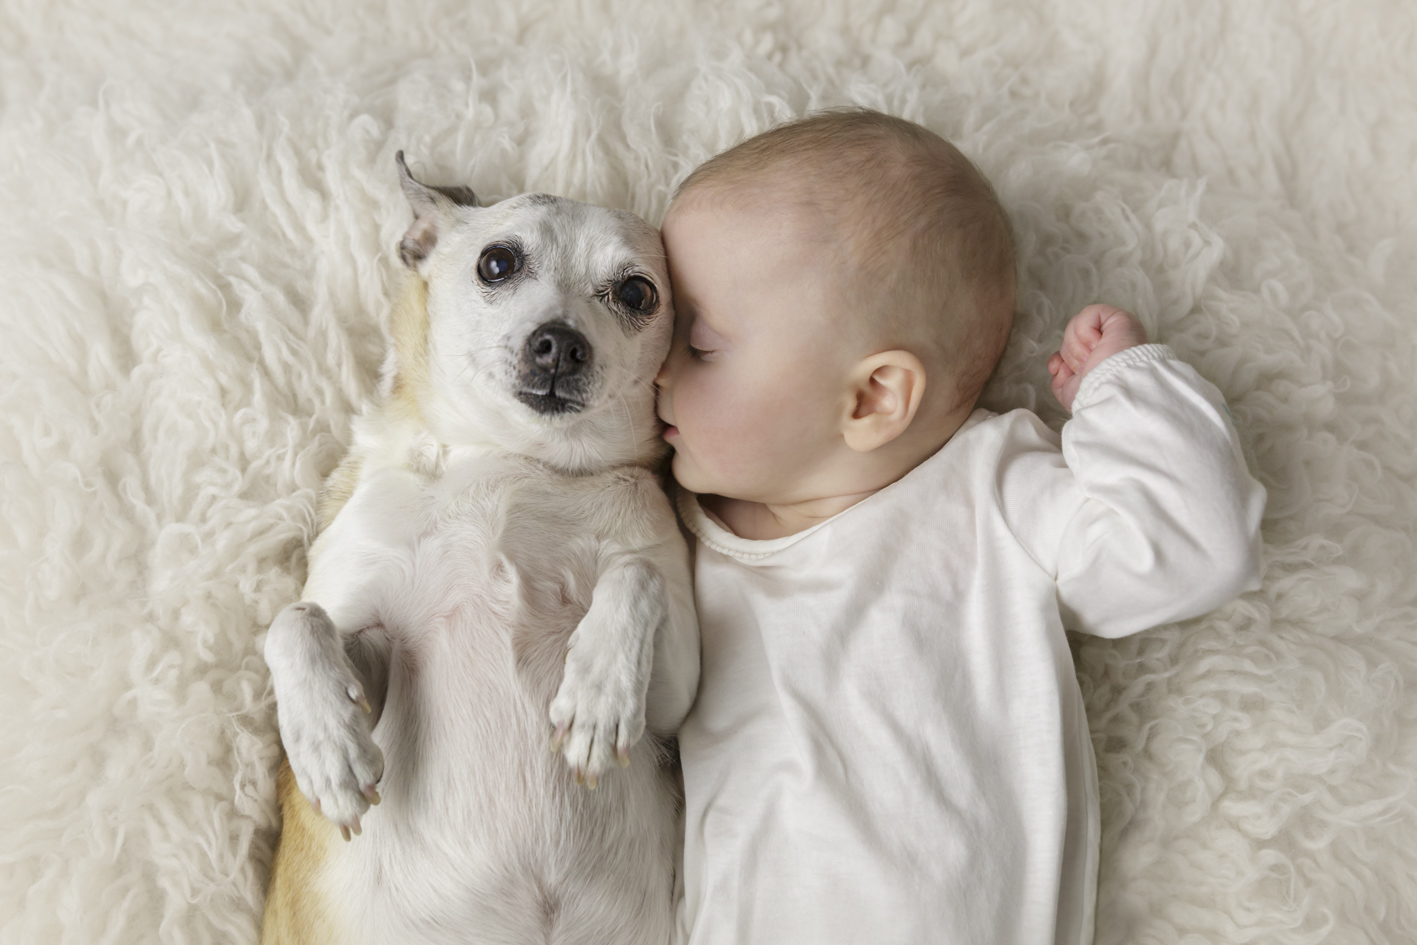 baby with beloved pet dog